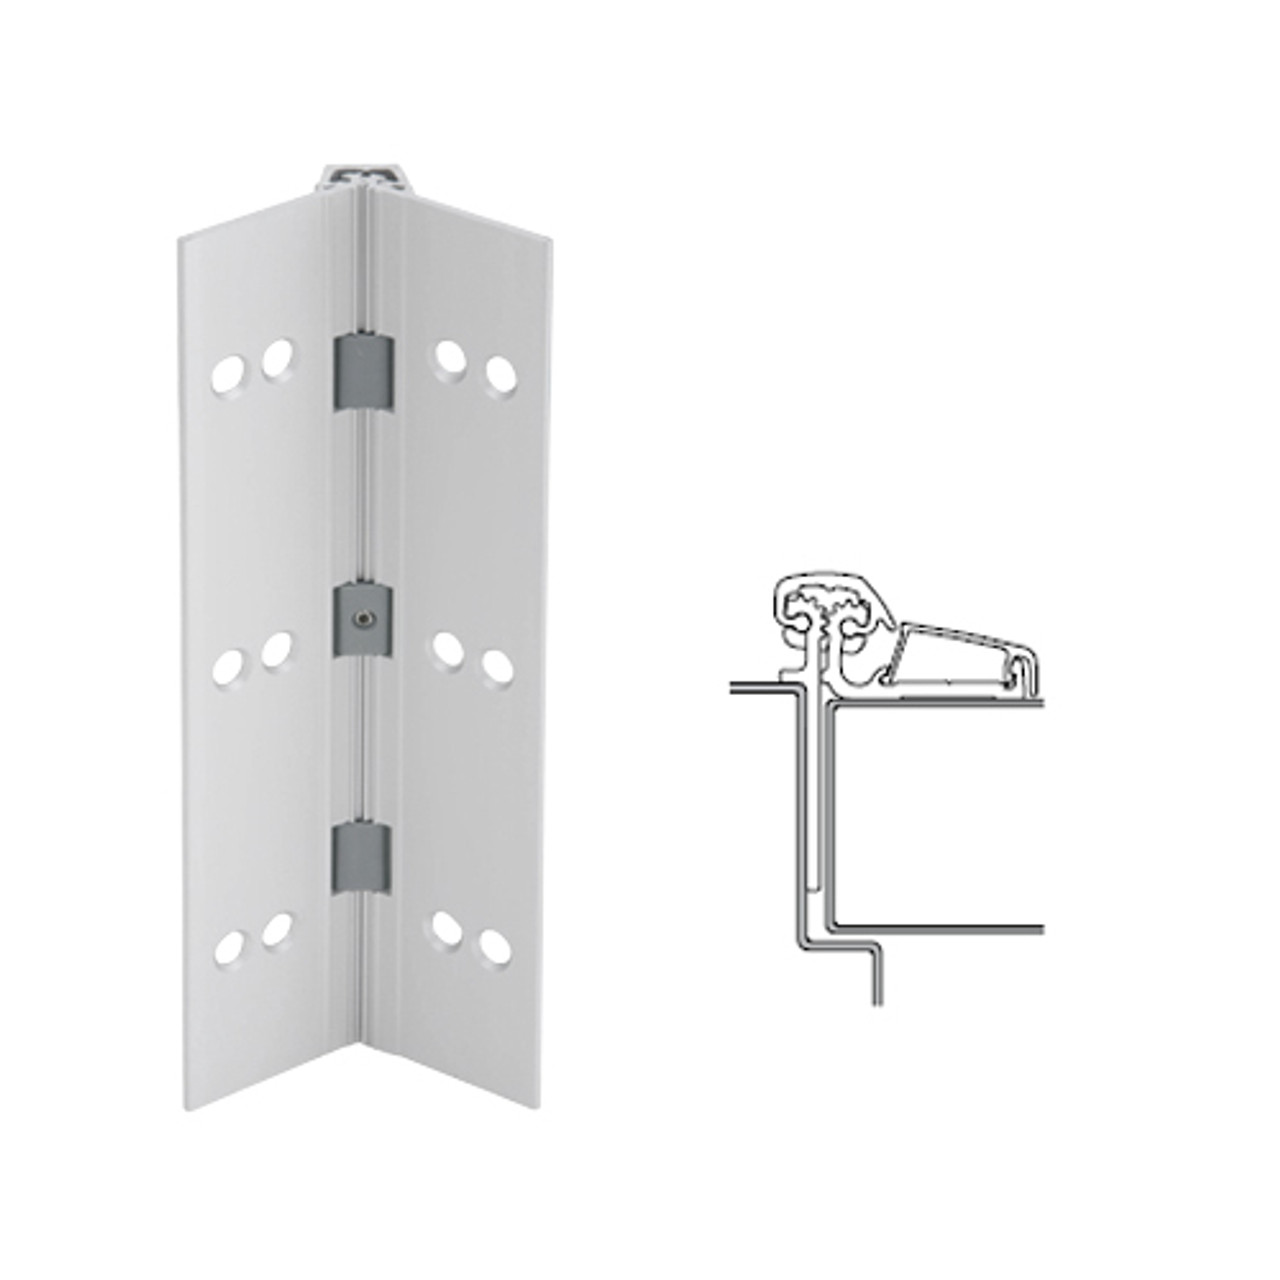 053XY-US28-85-TEKWD IVES Adjustable Half Surface Continuous Geared Hinges with Wood Screws in Satin Aluminum